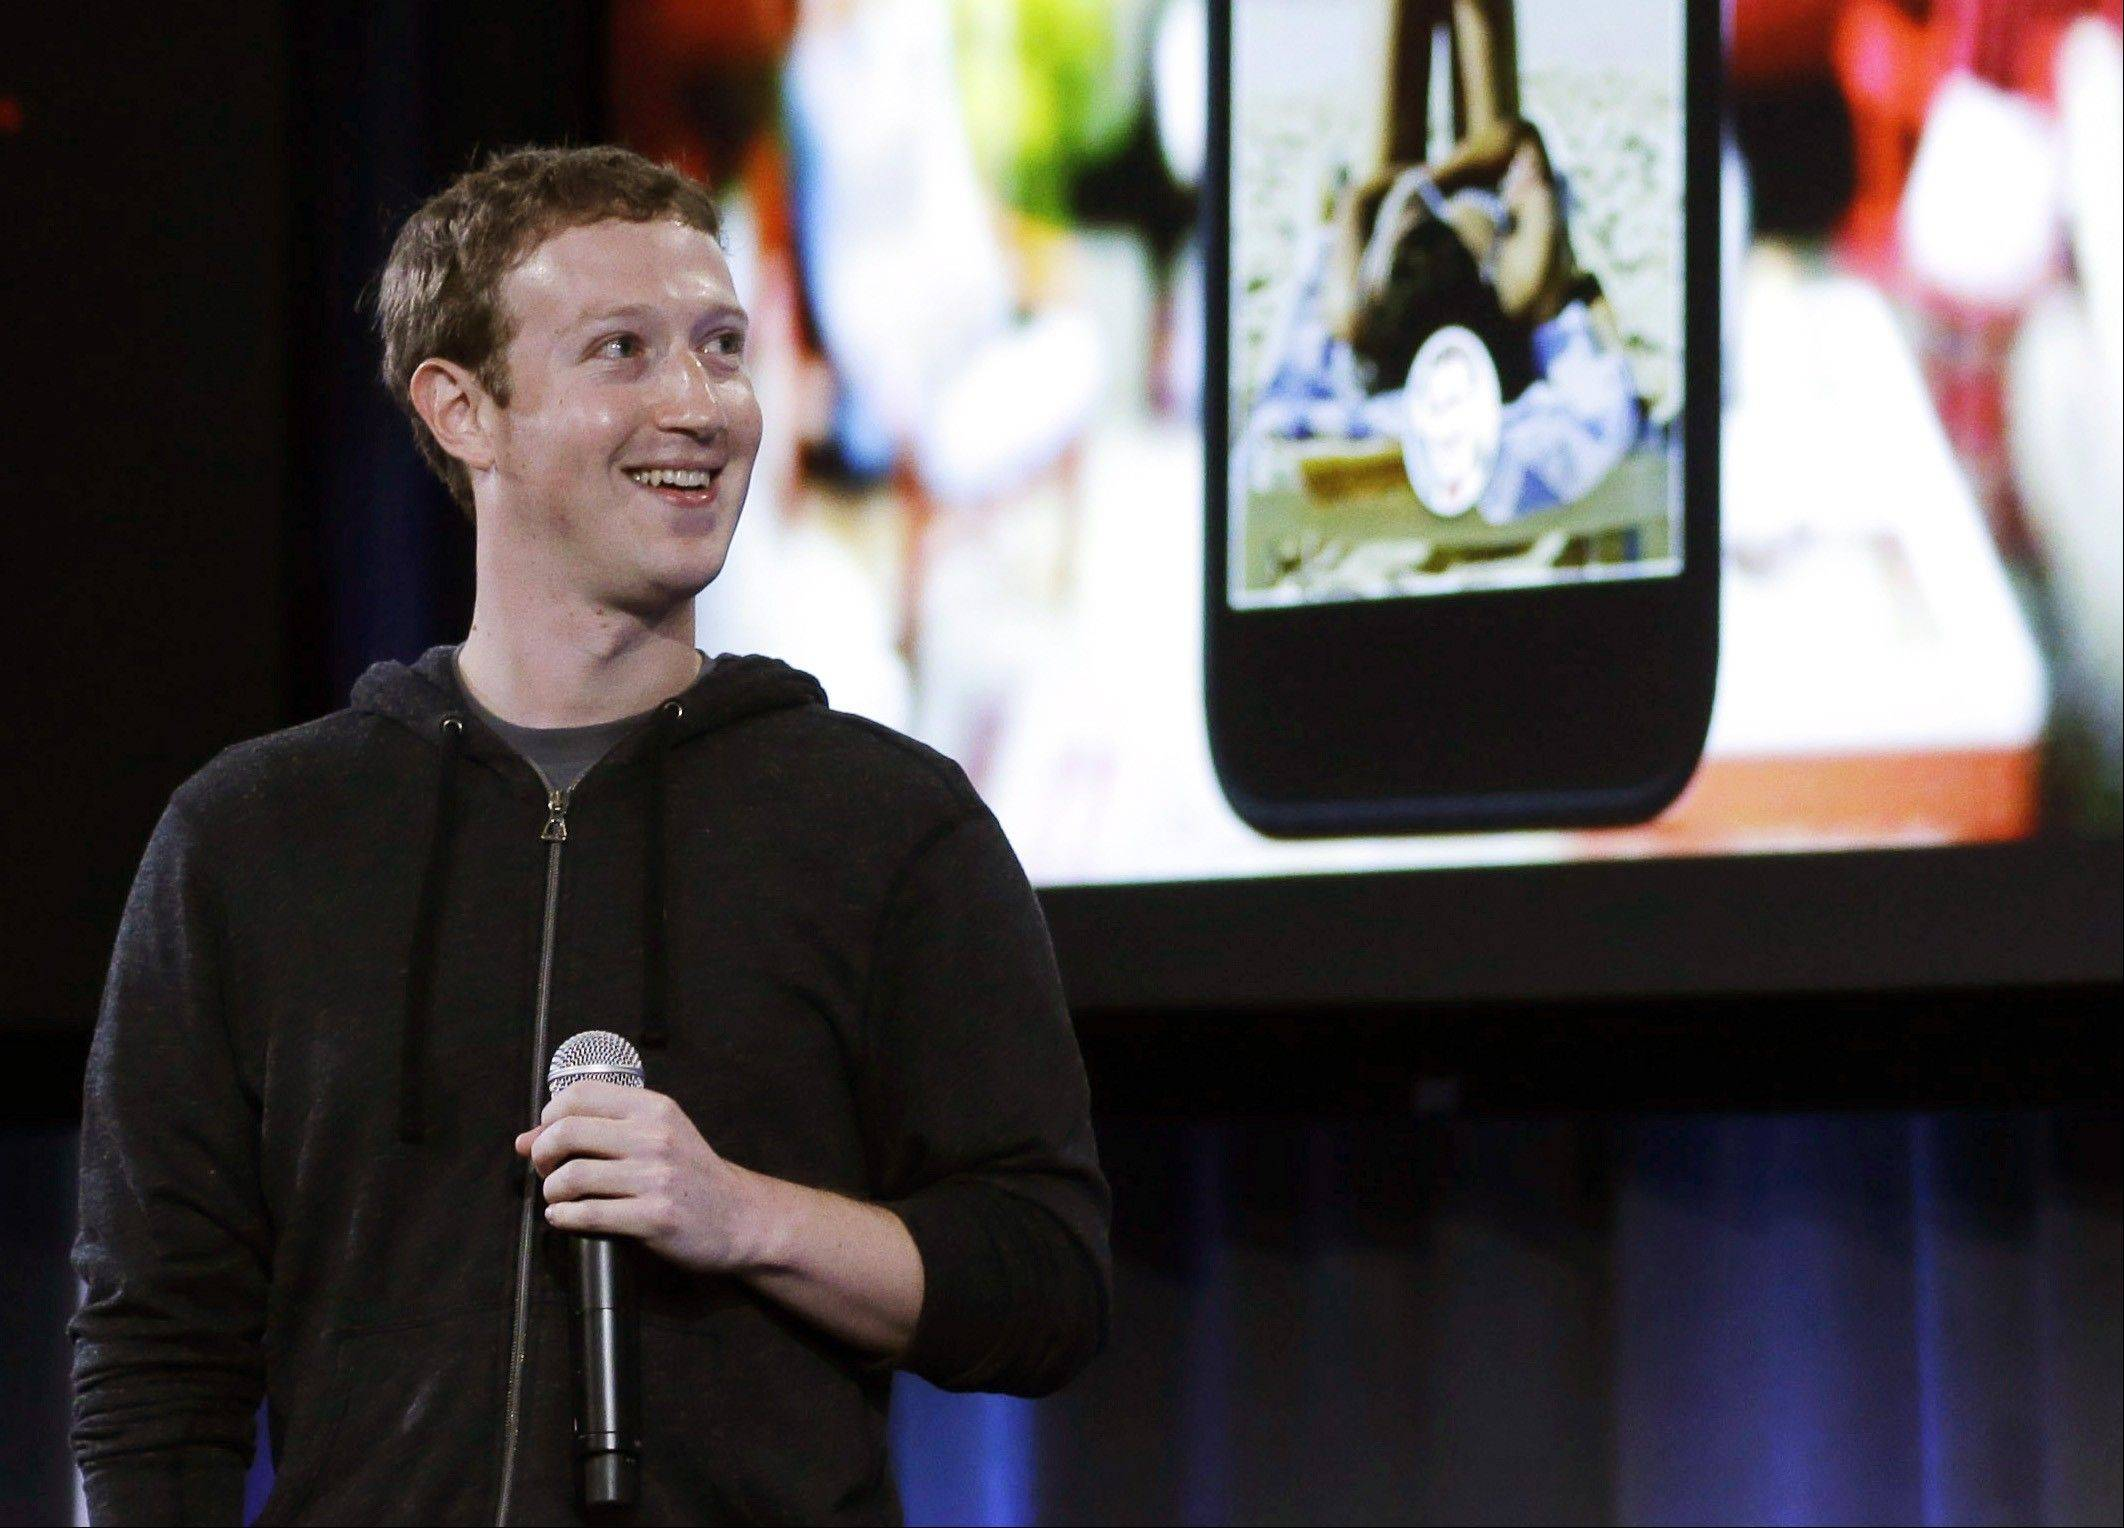 Facebook CEO Mark Zuckerberg speaks at the company's headquarters in Menlo Park, Calif., Thursday, April 4, 2013. Zuckerberg says the company is not building a phone or an operating system. Rather, Facebook is introducing a new experience for Android phones. The idea behind the new Home service is to bring content right to you, rather than require people to check apps on the device.